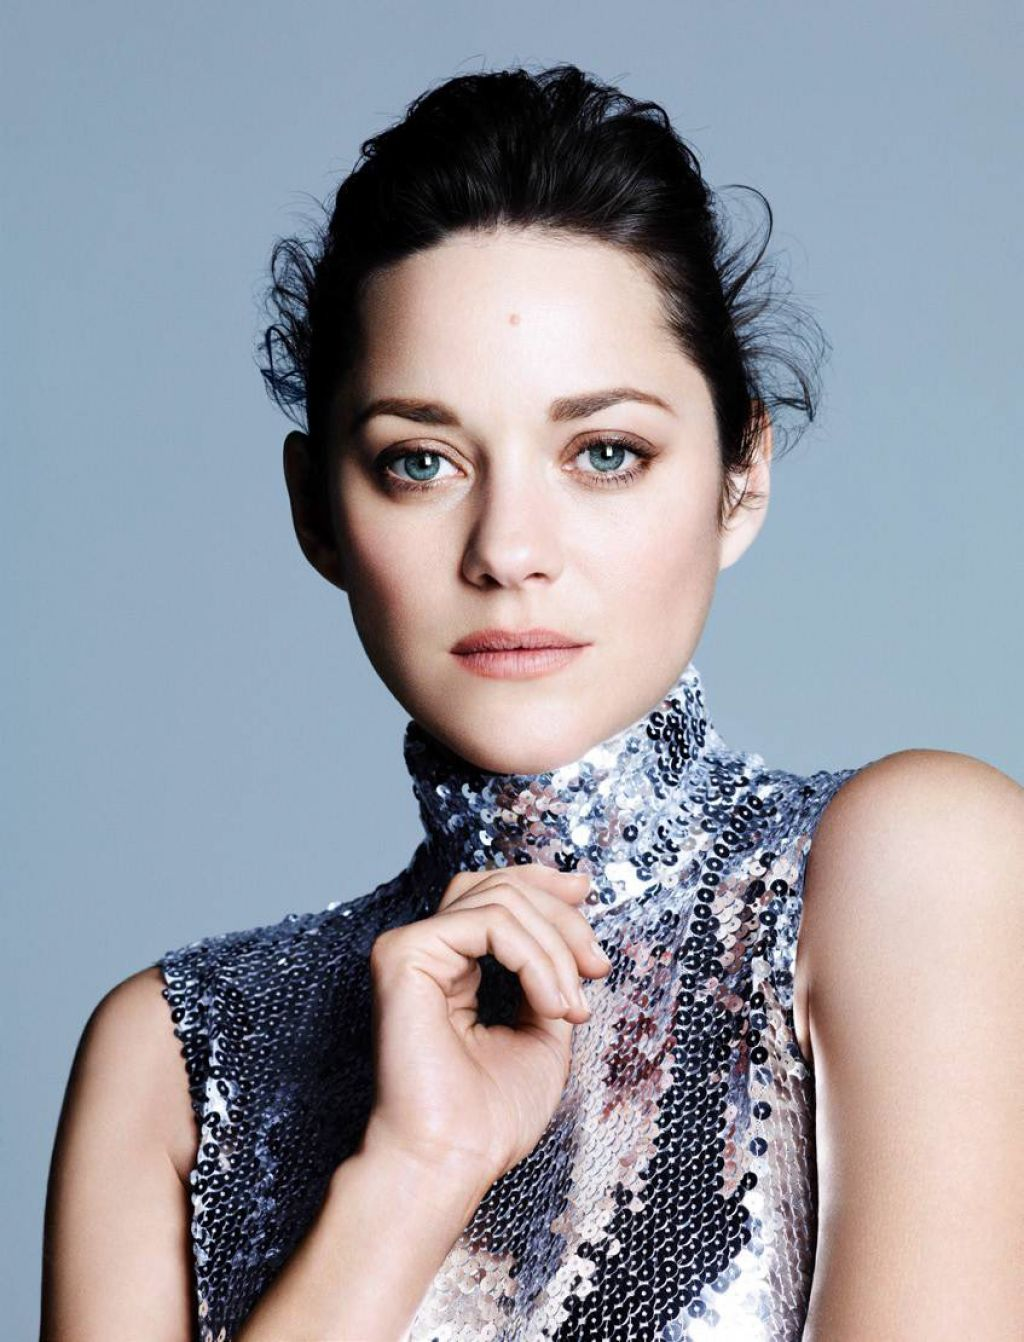 Marion Cotillard Wallpapers High Quality | Download Free Marion Cotillard